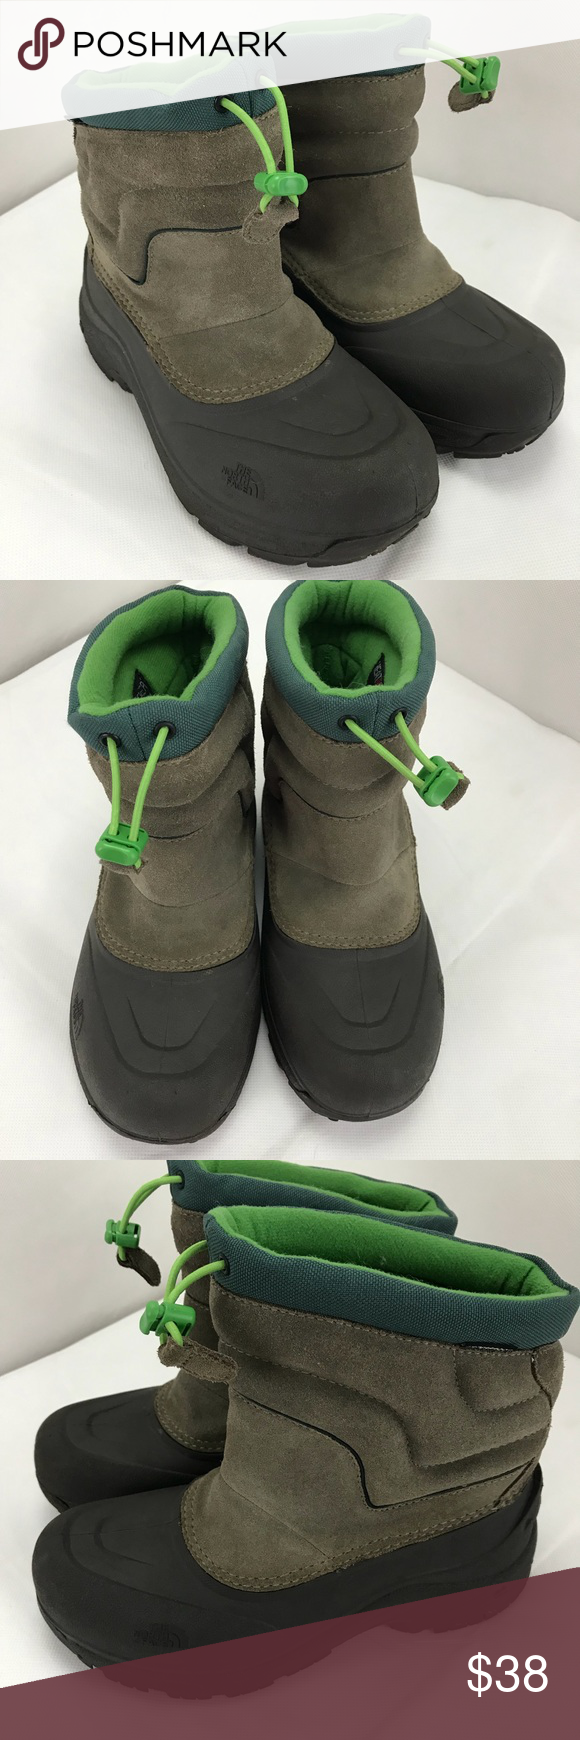 fd595331f The North Face boys heat seeker boots.‼️ EUC . Like new. Worn once ...